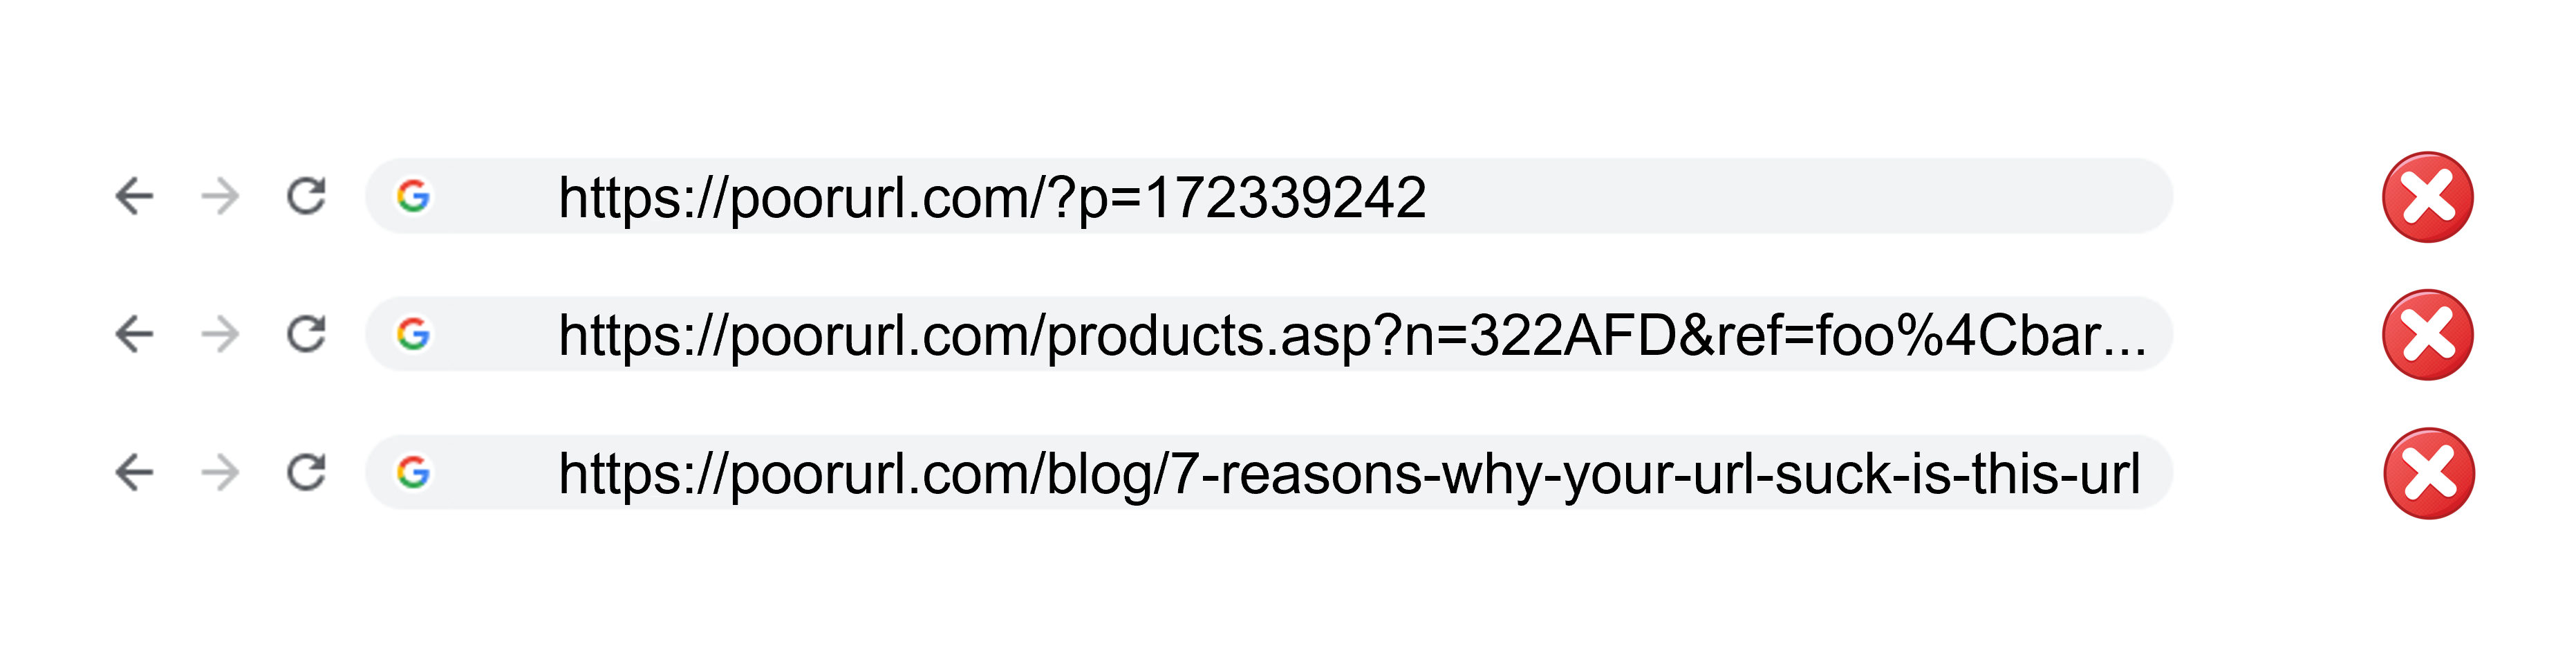 unlogical url structure a bad example